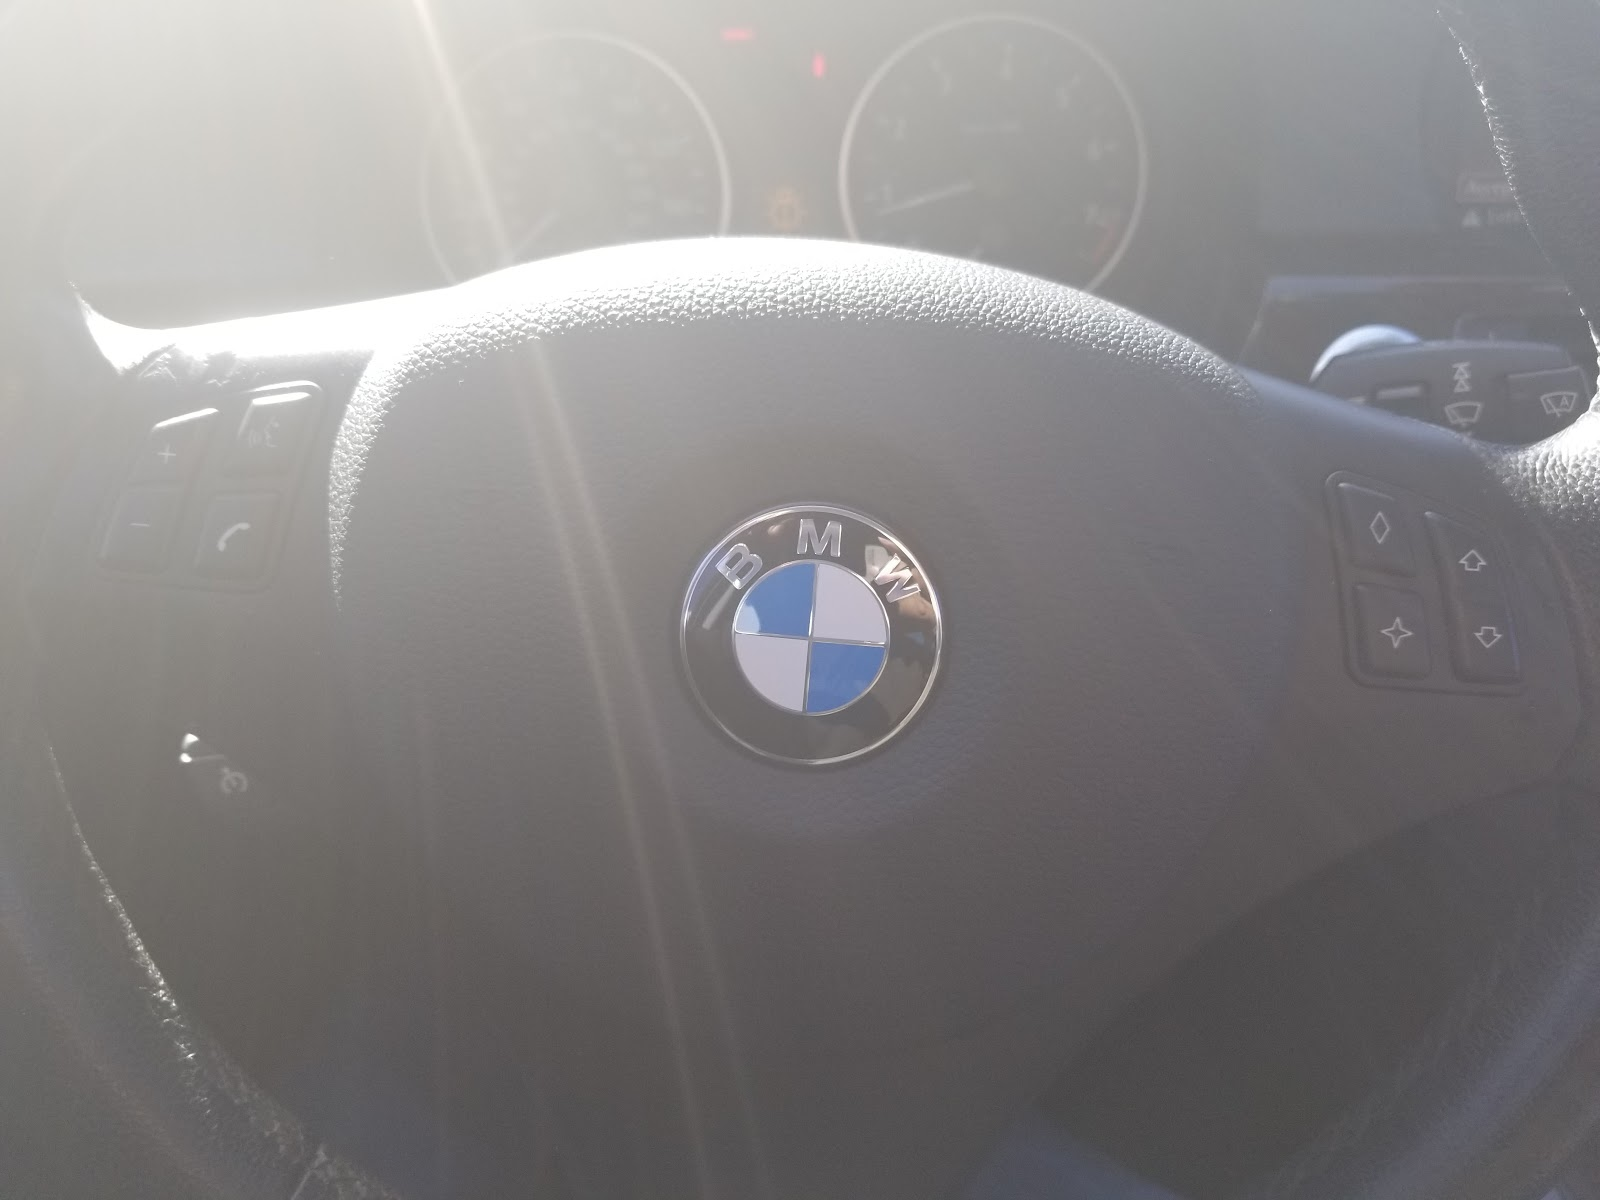 Welcome to my Blog, BMW stories and more : E90 BMW Recalls, My